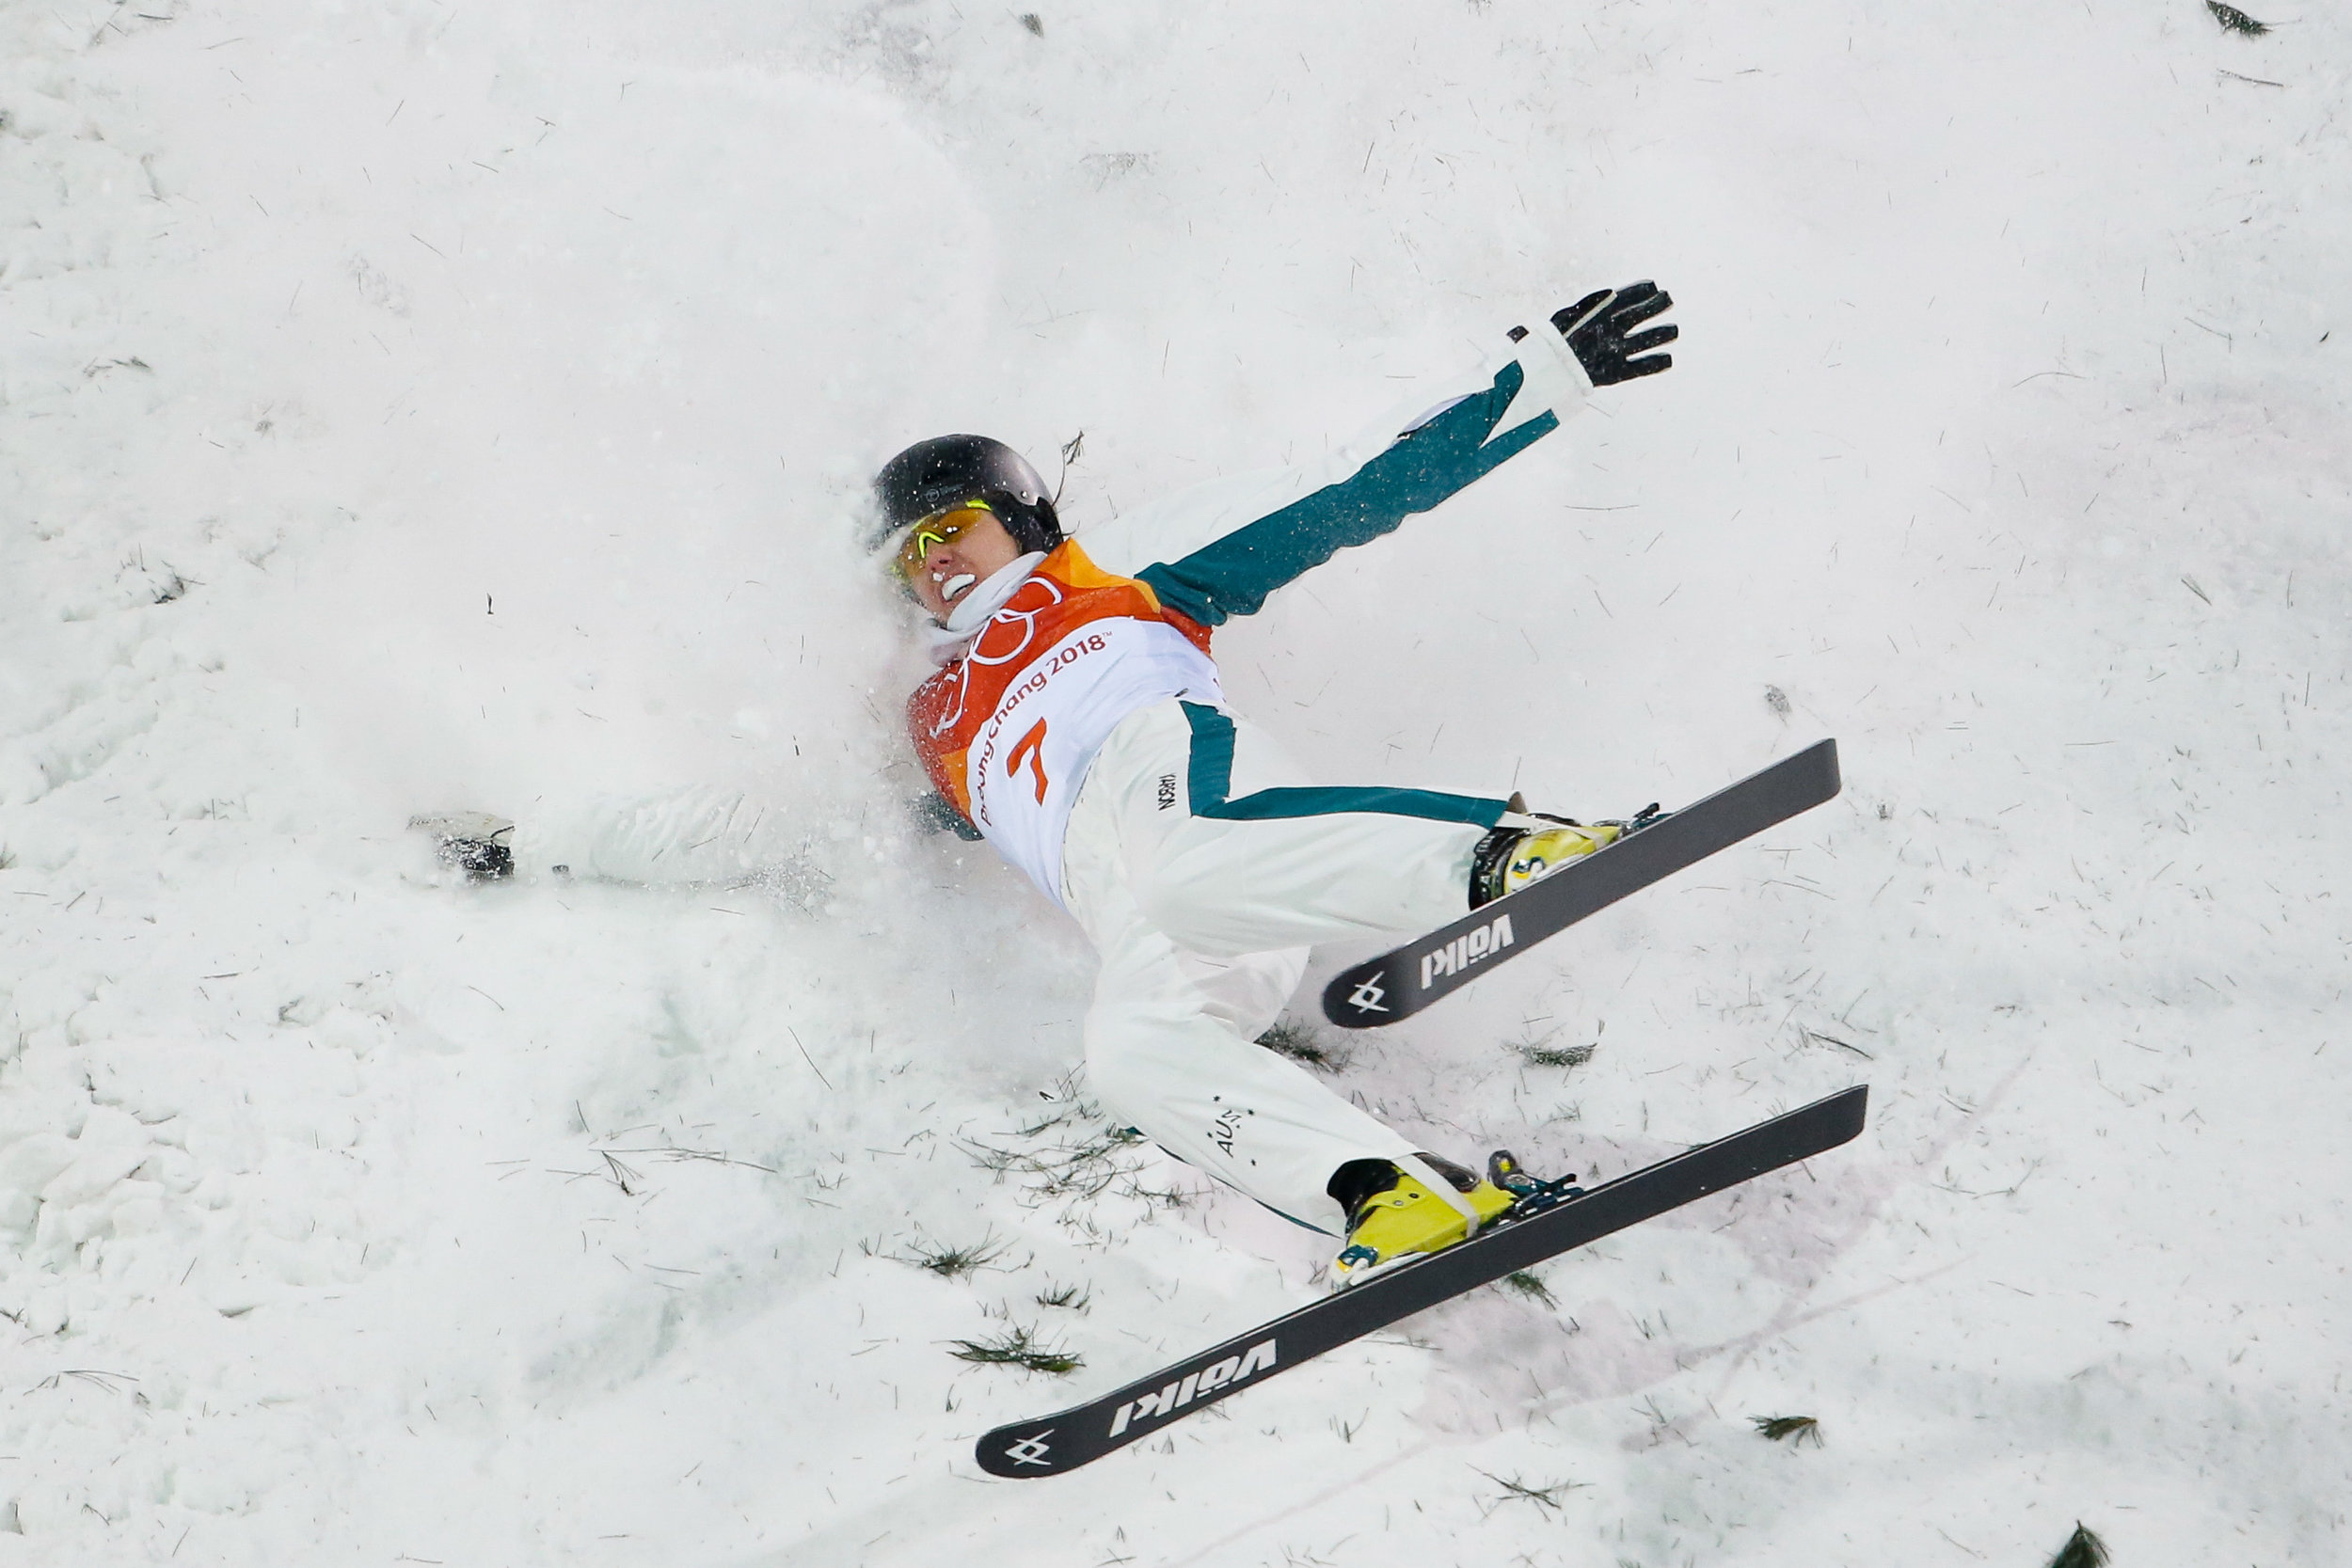 Laura Peel of Australia crashes on the landing while competing in the Ladies' Freestyle Skiing Aerials final at Phoenix Snow Park in Pyeongchang, South Korea on February 16, 2018.  Photo by Matthew Healey/UPI